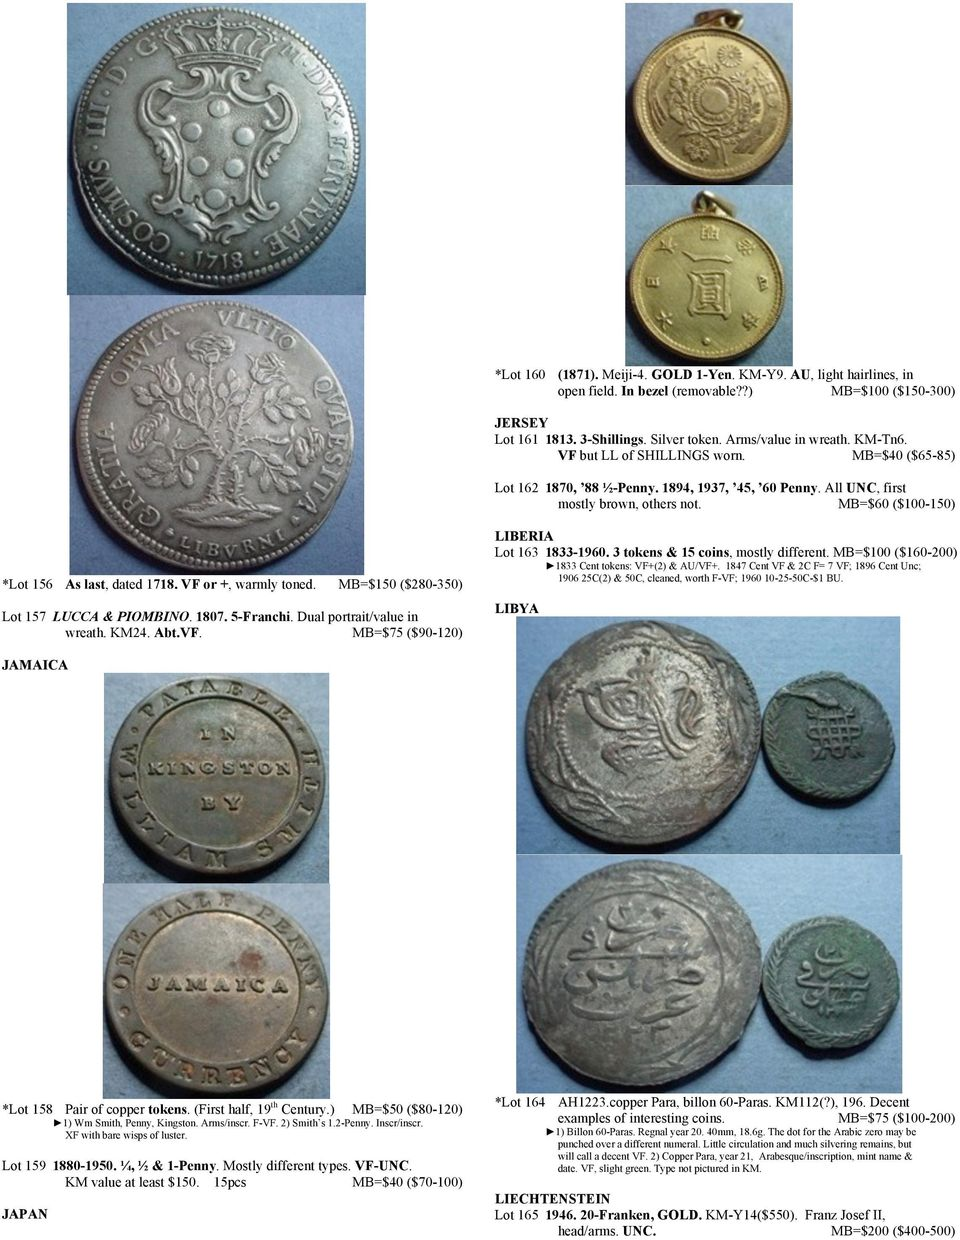 Coins: World Beautiful Egypt 1942 Silver 2 Piastres King Farouk Choice Unc Km-365 Nice Details Scarce Large Assortment